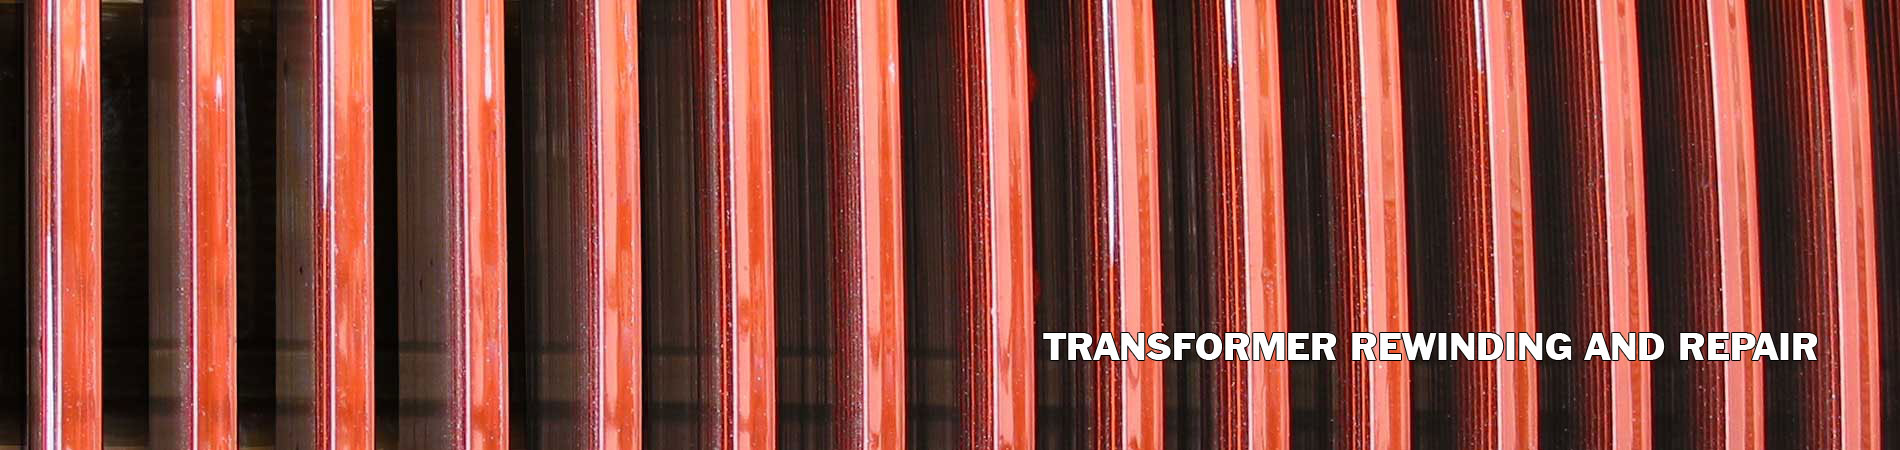 Dry Type Transformer Rewind Repair Services